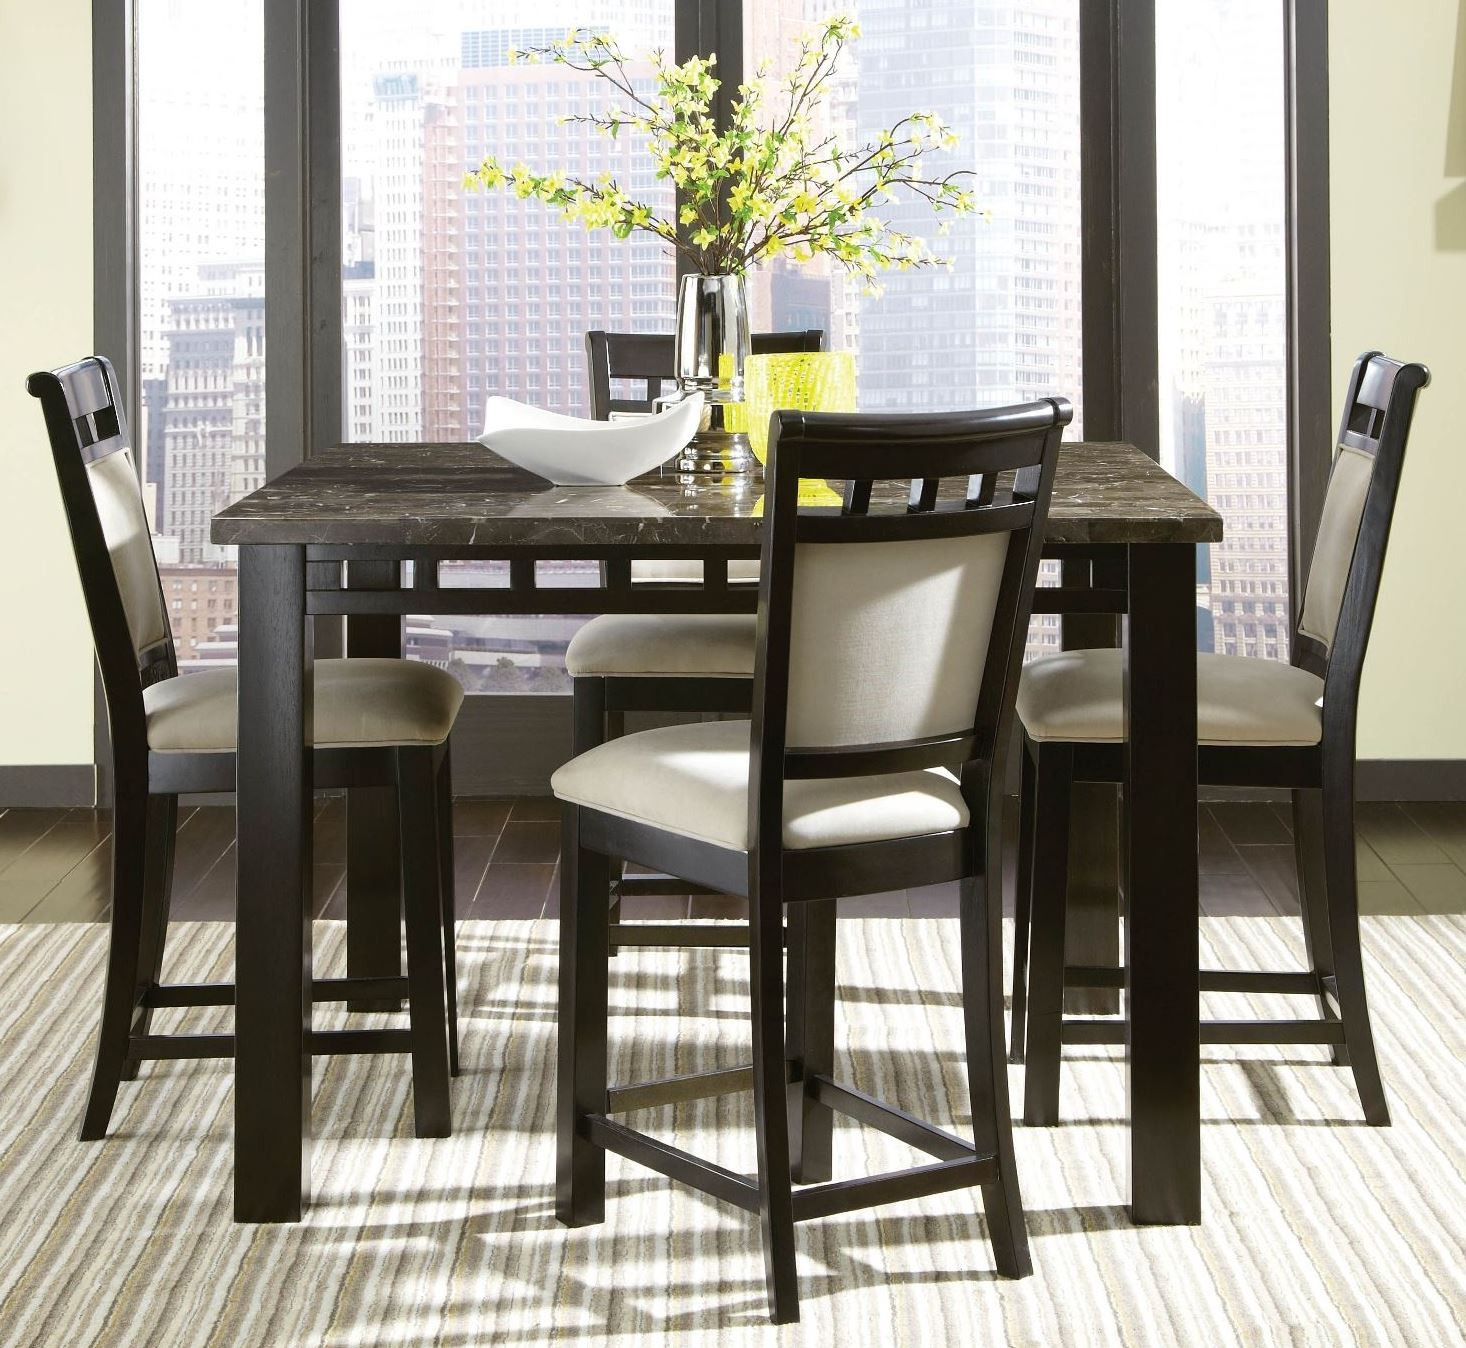 Counter Height Dining Room Sets: Gateway Brown And Gray Counter Height Dining Room Set From